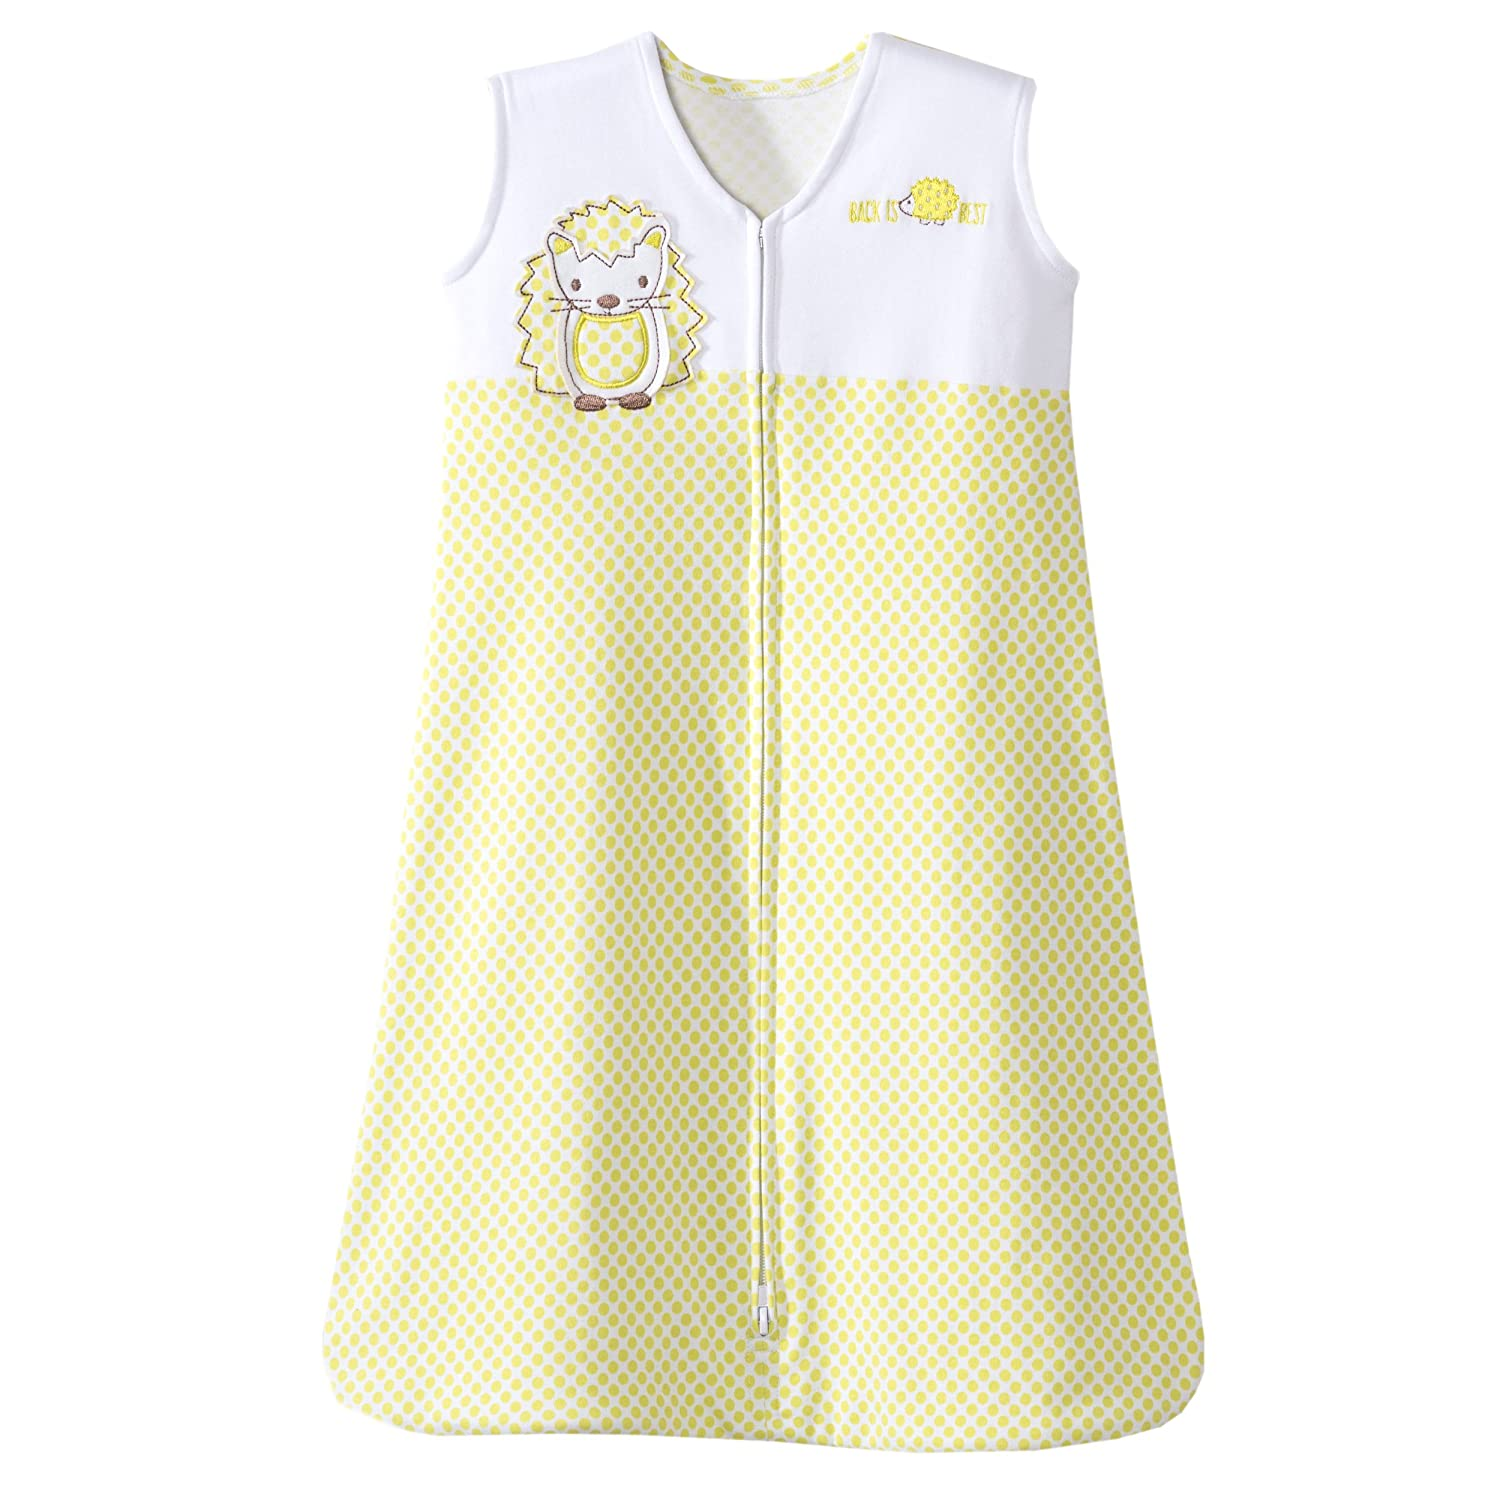 HALO SleepSack 100% Cotton Wearable Blanket, Chartreuse , Medium by Halo: Amazon.es: Bebé